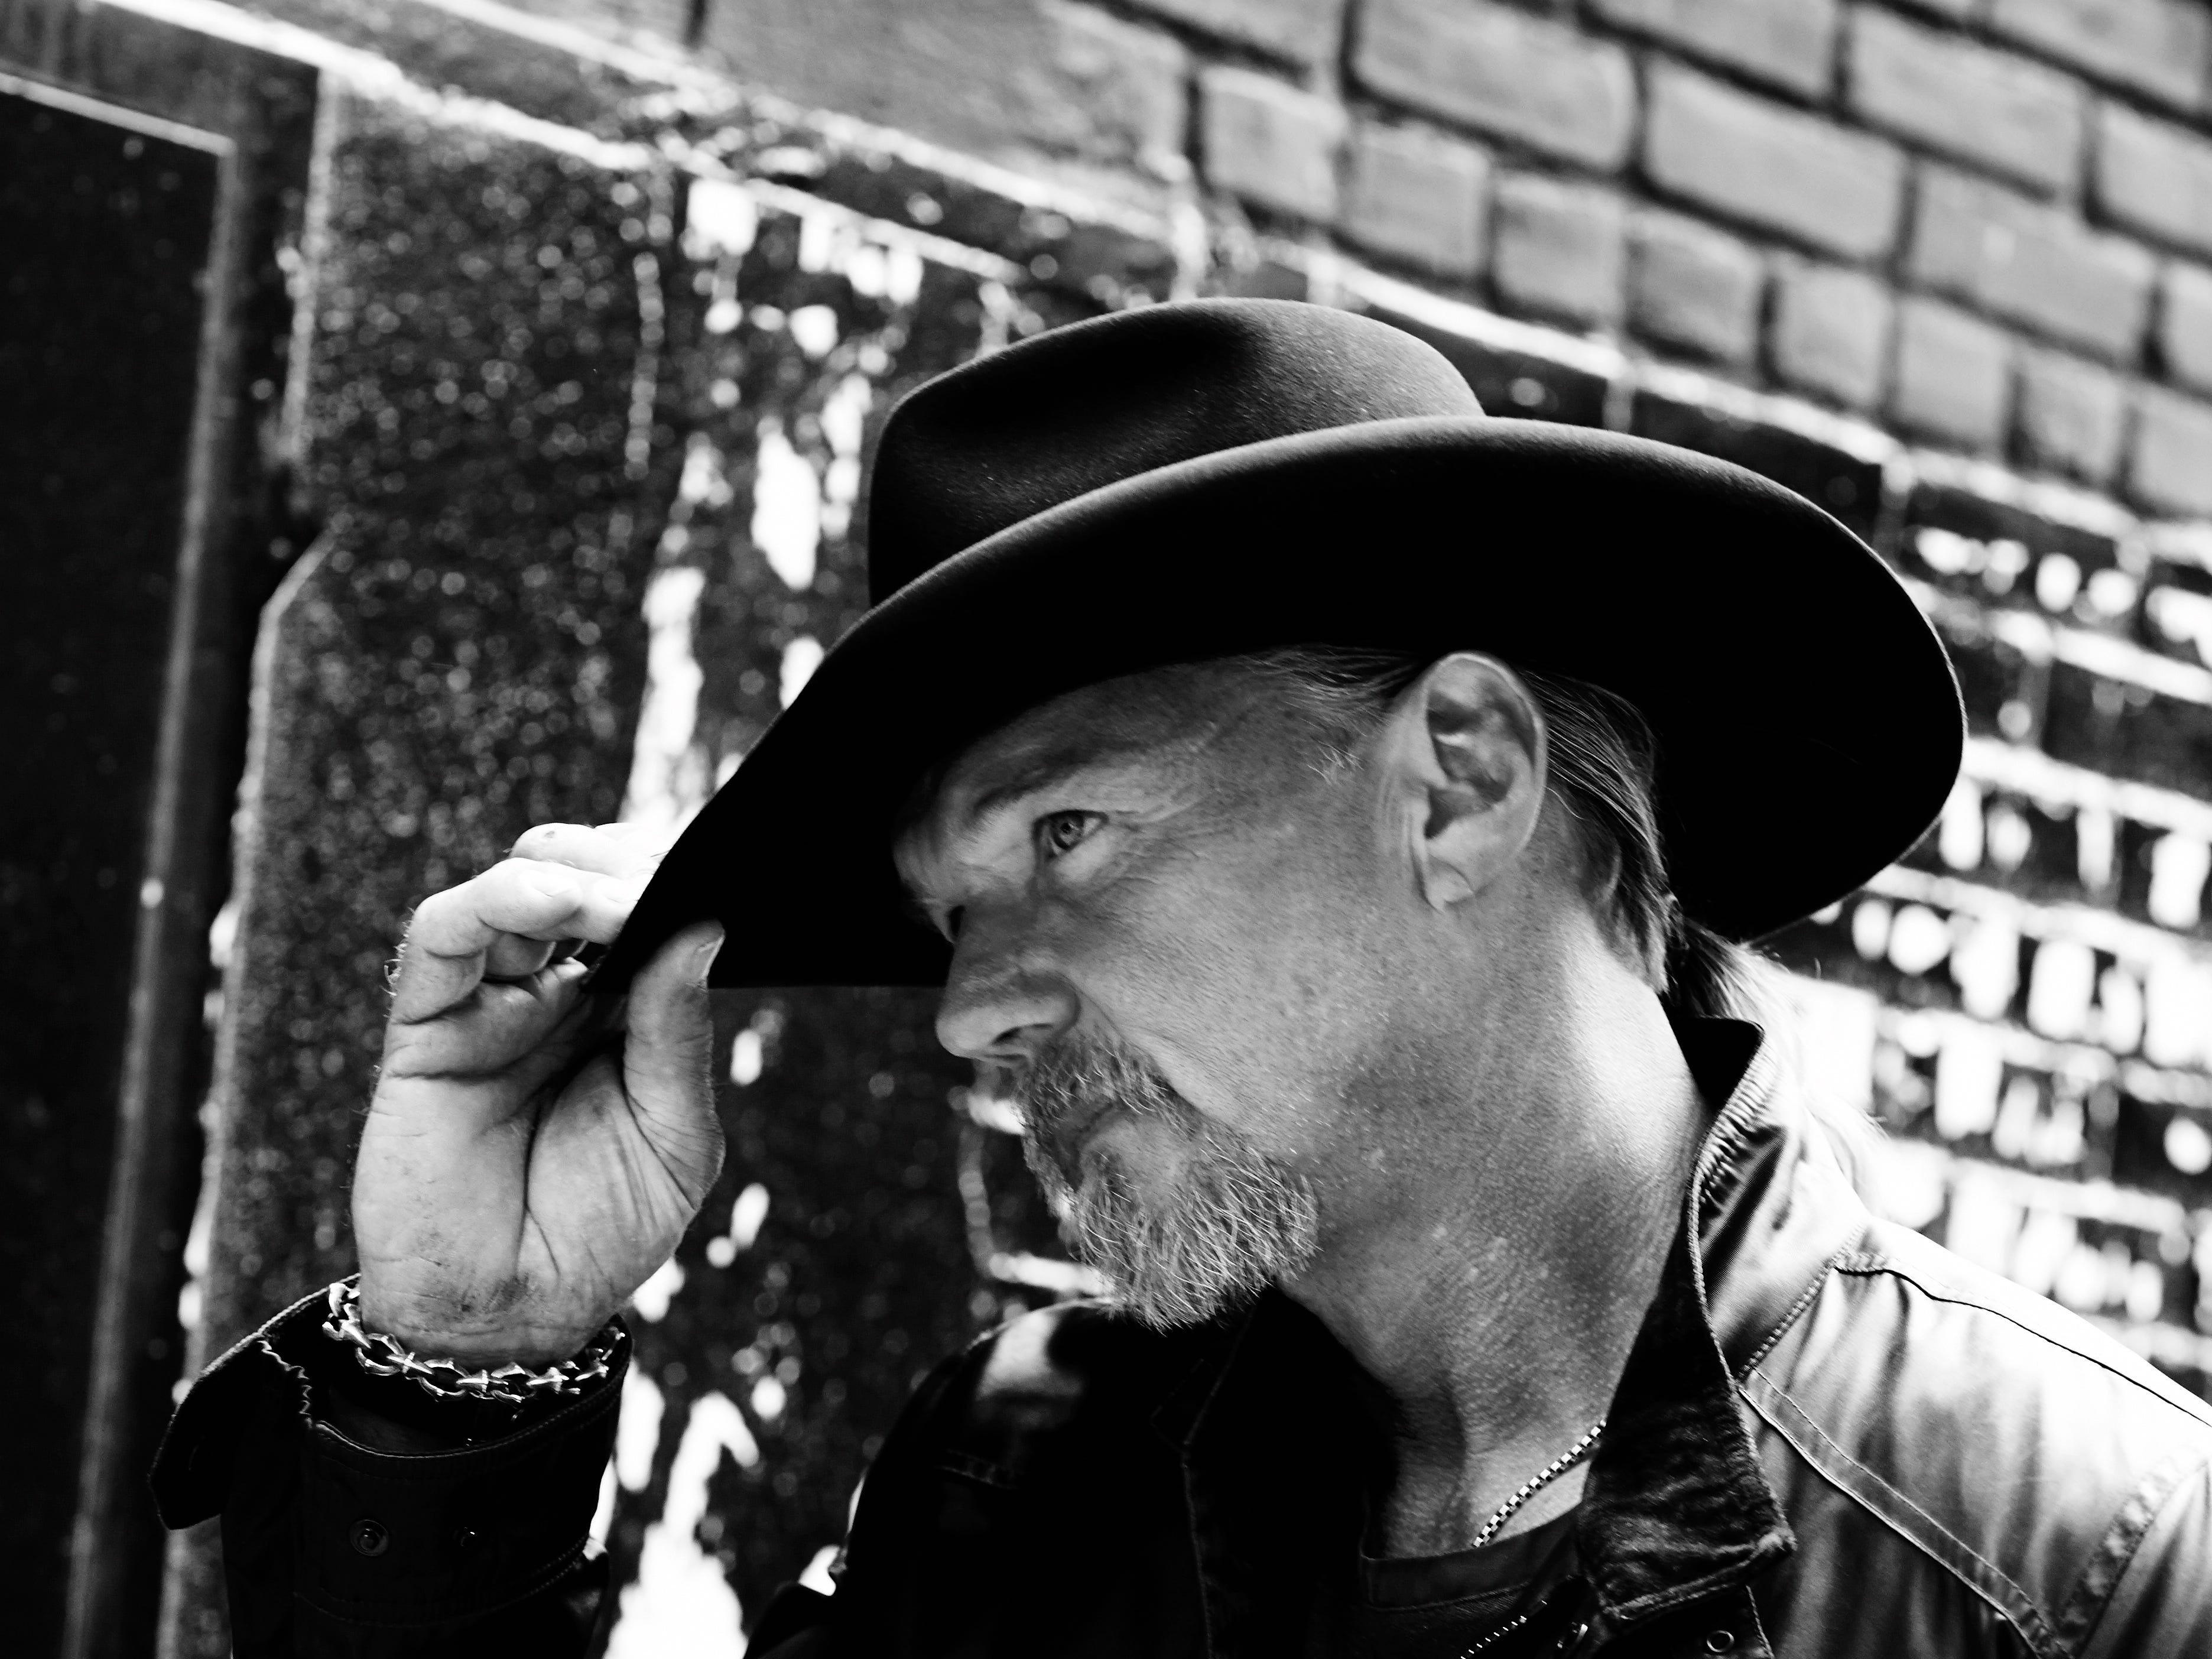 Trace Adkinswill perform in the Feb. 11th Borderline Strong show at the Thousand Oaks Civic Arts Plaza to assist the victims and families of the Nov.7 shooting at the Borderline Bar & Grill in Thousand Oaks.